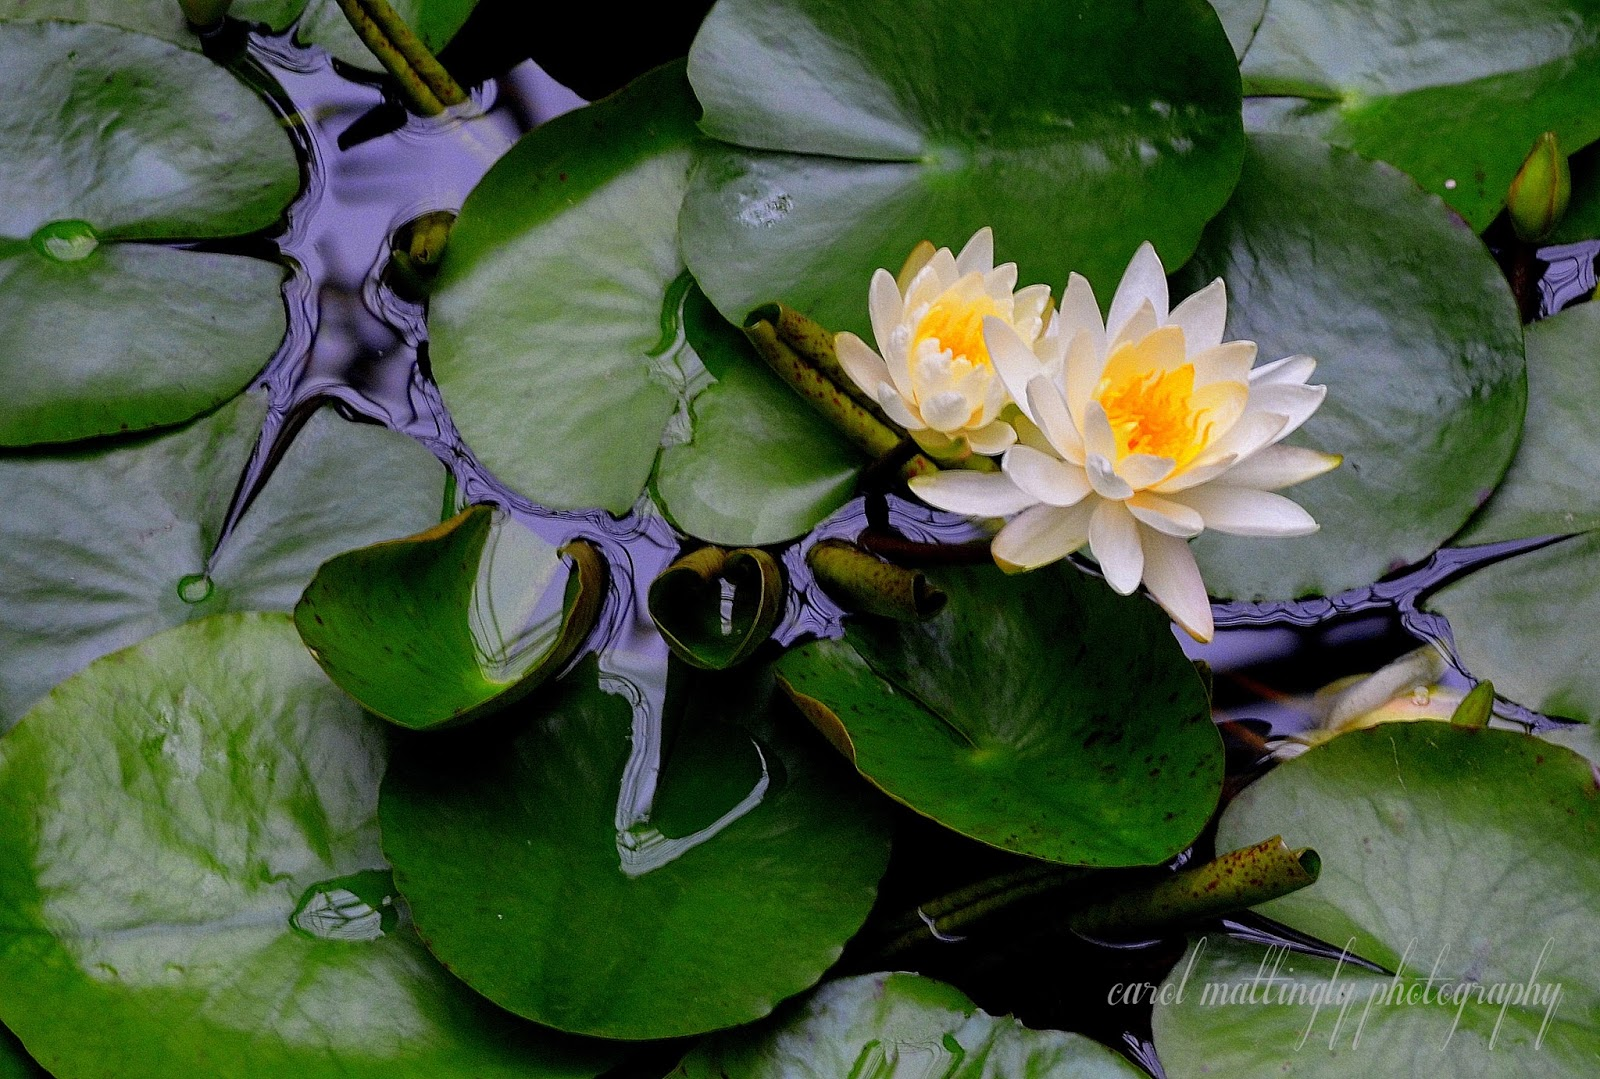 Carol mattingly photography white water lily garden conservatory average individual it might be hard to smell that scent what with the lily being too far away in the water to get a sniff i love the large lily pads izmirmasajfo